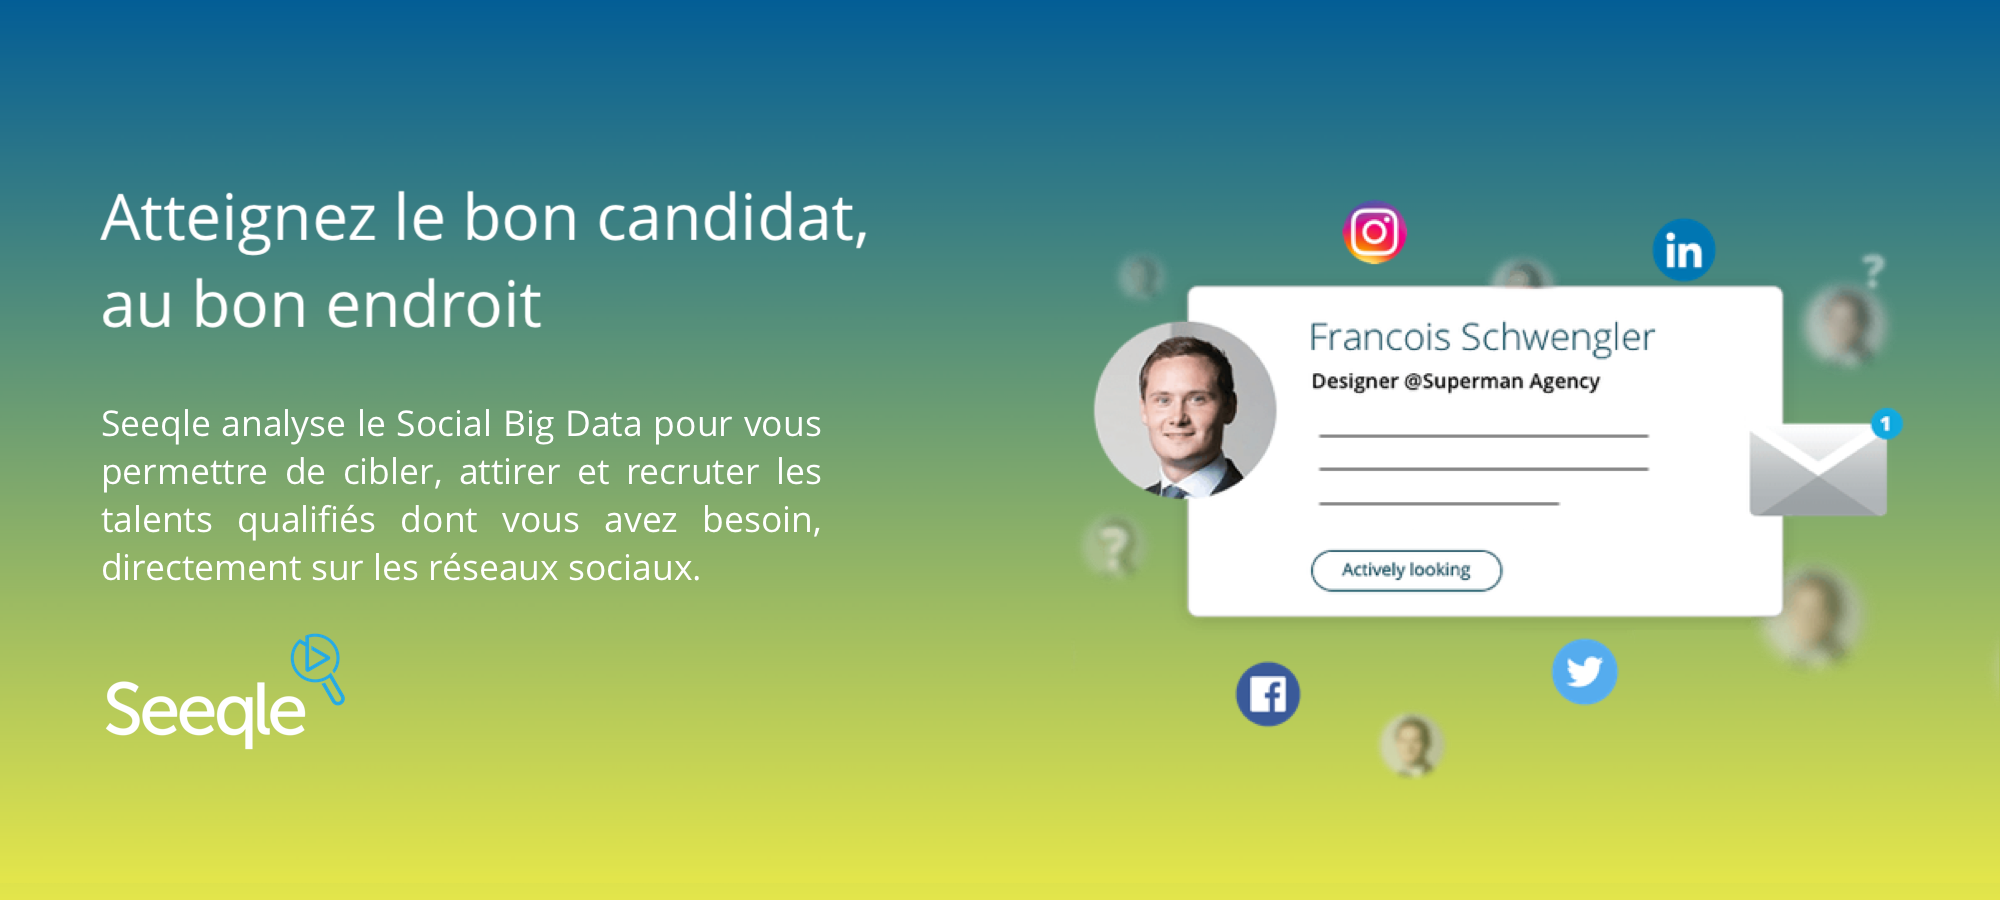 Review Seeqle: Solution N°1 for Programmatic Candidate Acquisition - Appvizer